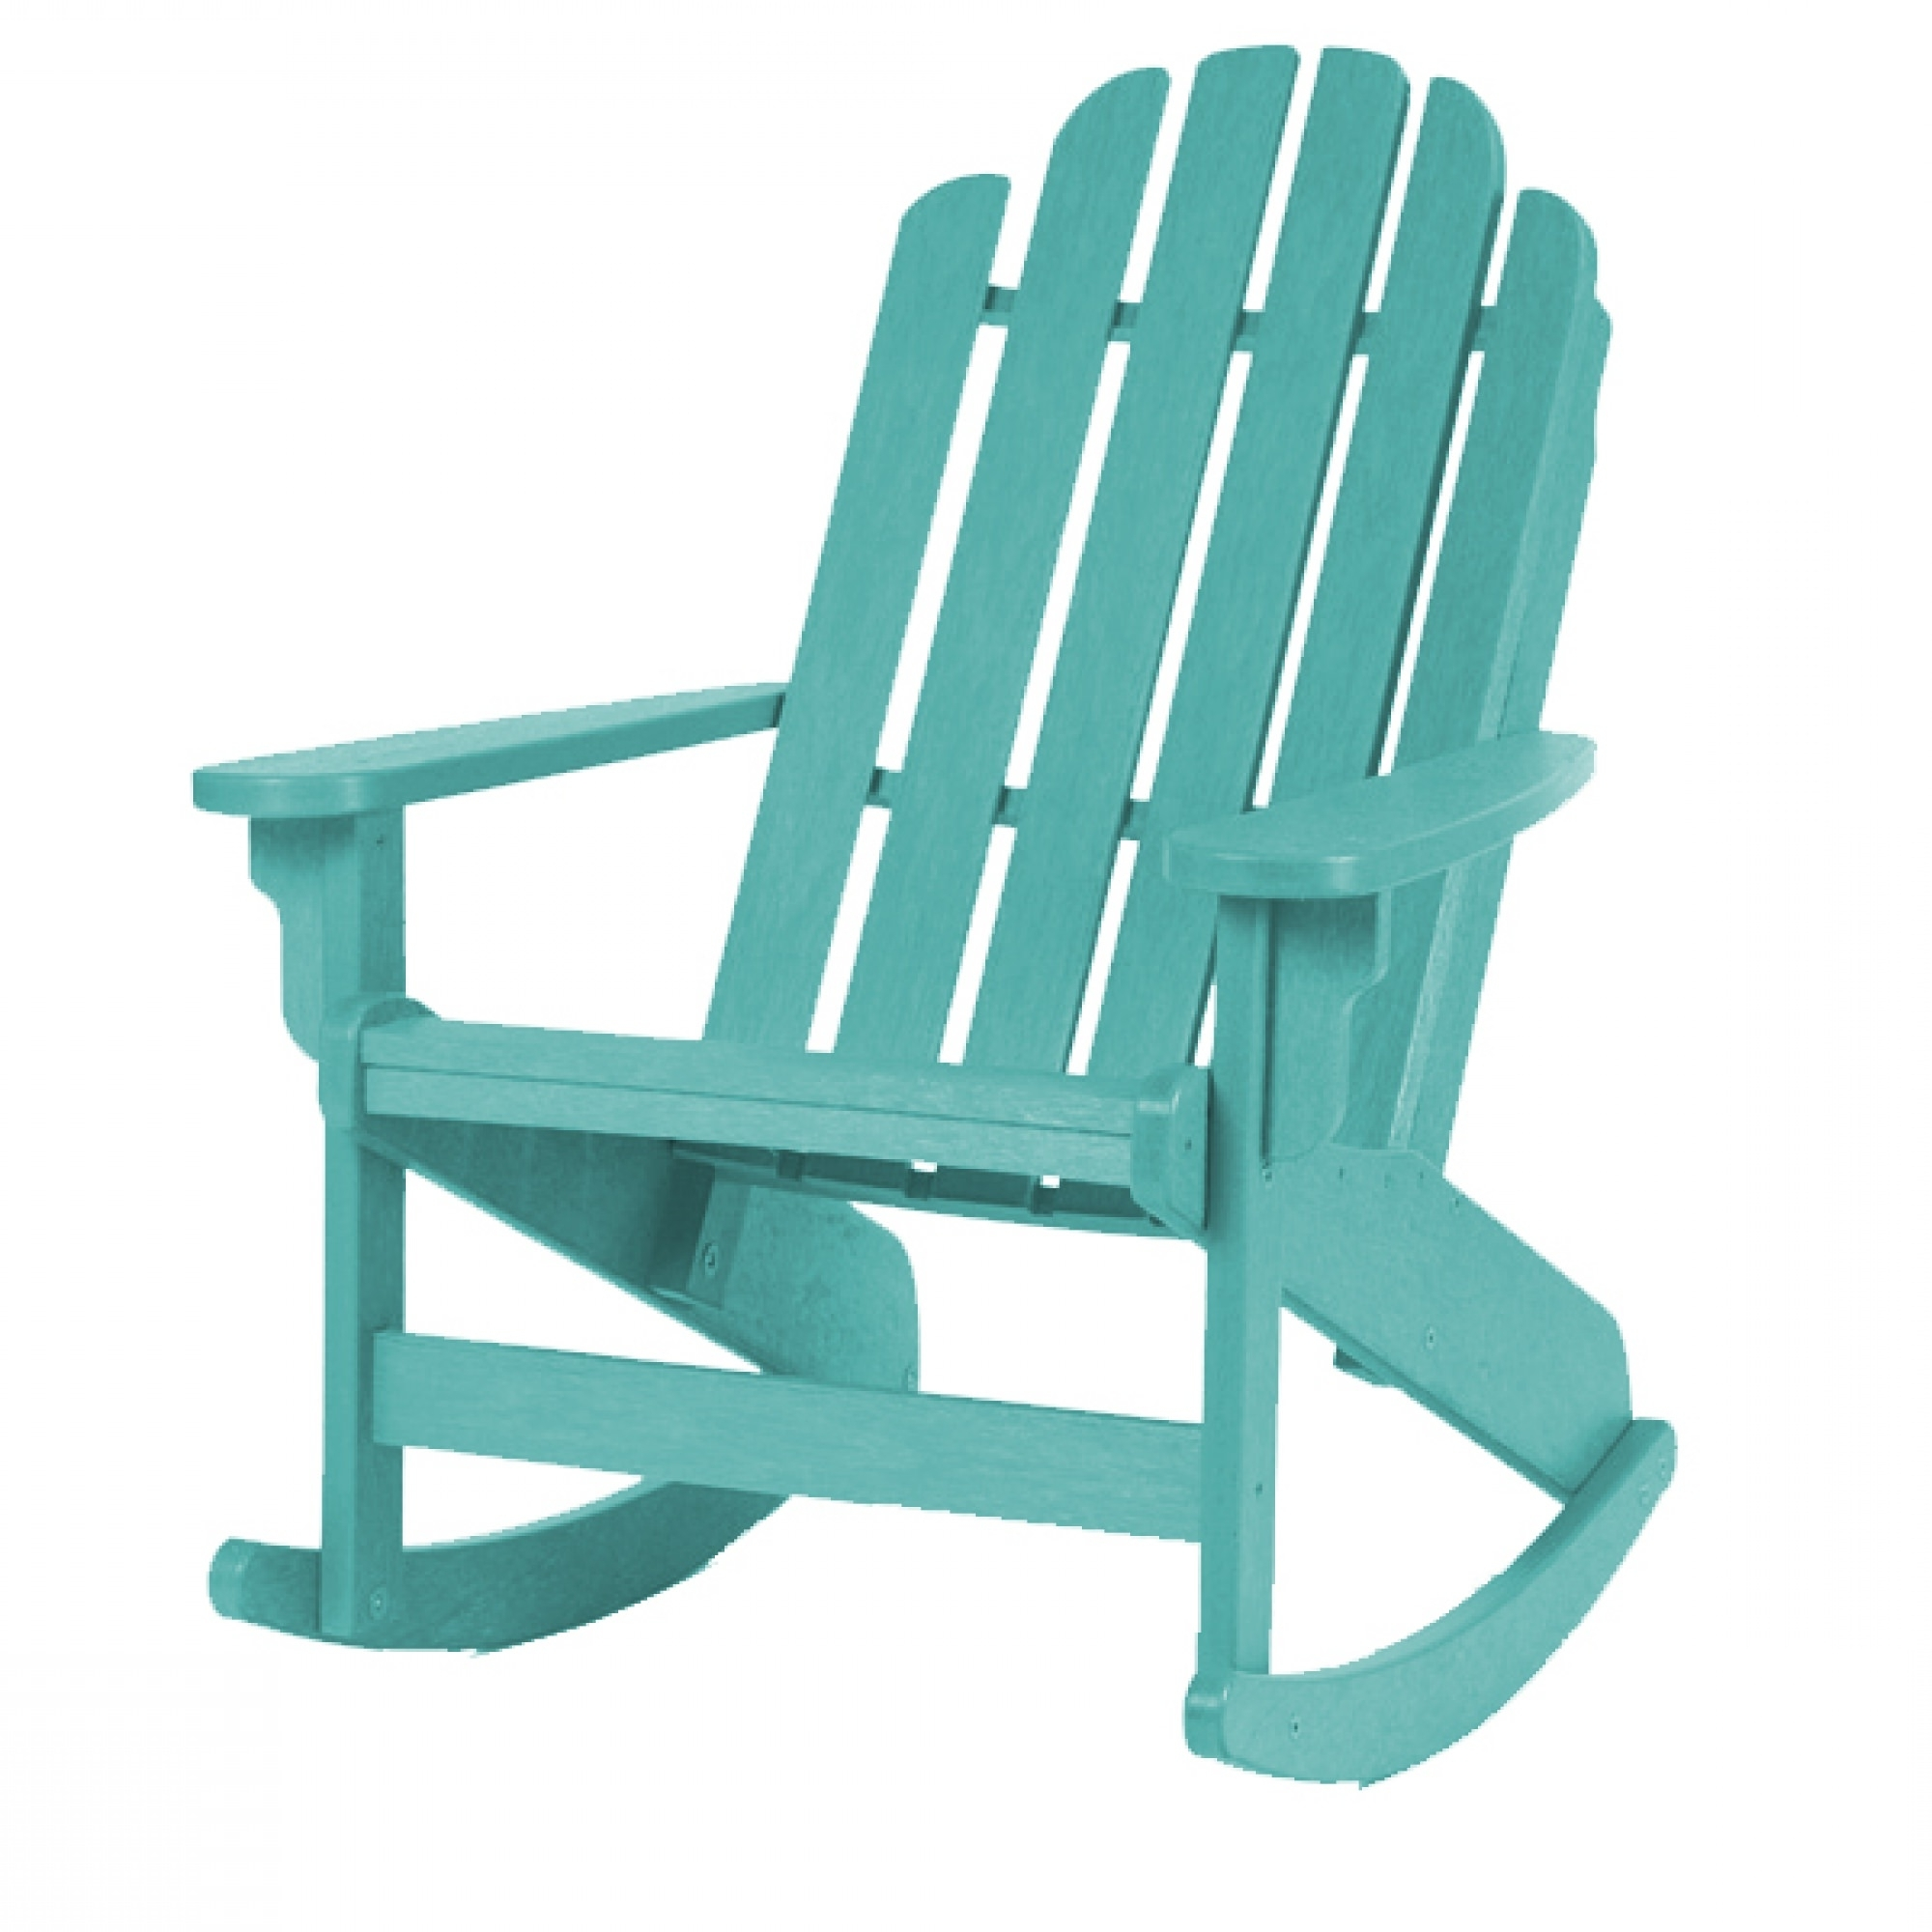 Best And Newest Furniture: Inspiring Patio Furniture Ideas With Exciting Adirondack With Rocking Chairs At Lowes (View 10 of 20)